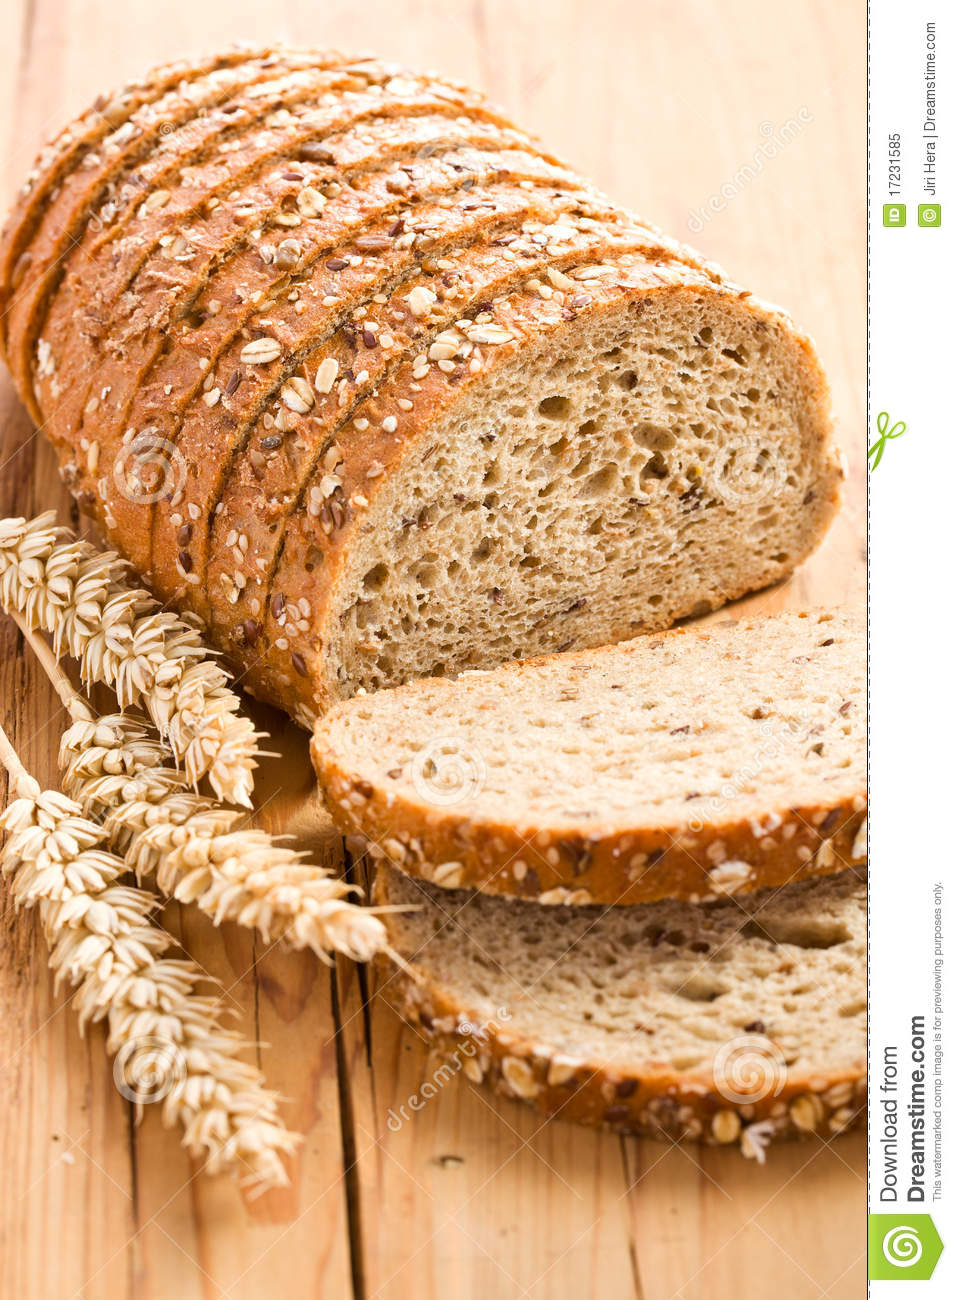 Whole Wheat Bread Royalty Free Stock Photo  Image 17231585. Blackrock Corporate Bond Fund. Aadvantage Tent Fittings Medicare Los Angeles. Shallotte Family Dentistry Online Cd Printing. What Does The Yellow Ribbon Mean. Osha 500 Instructor Certification. High Speed Internet Salem Oregon. Stonebridge Life Insurance Safe Alarm Systems. Online Christian Universities And Colleges